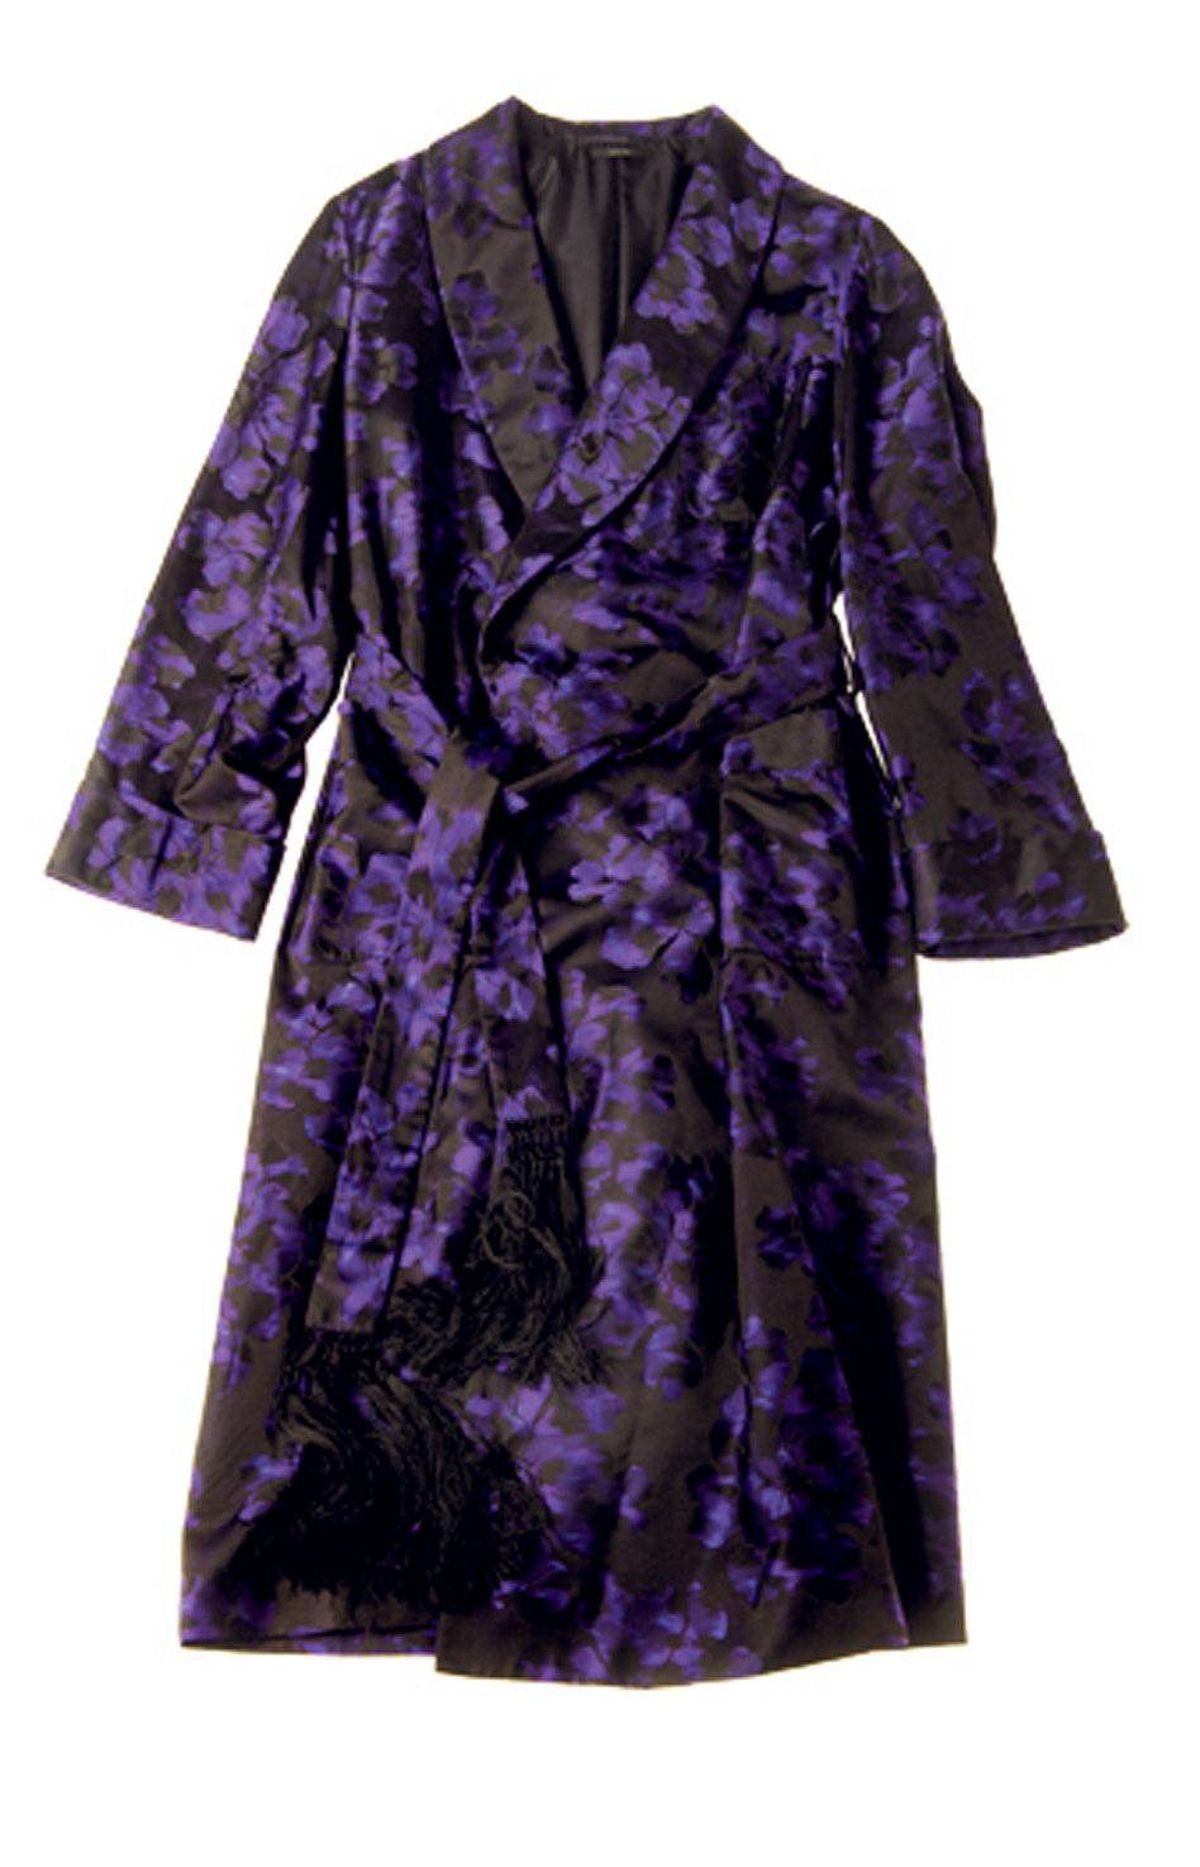 Silk Tom Ford men's robe, $7,995 at Harry Rosen (www.harryrosen.com).